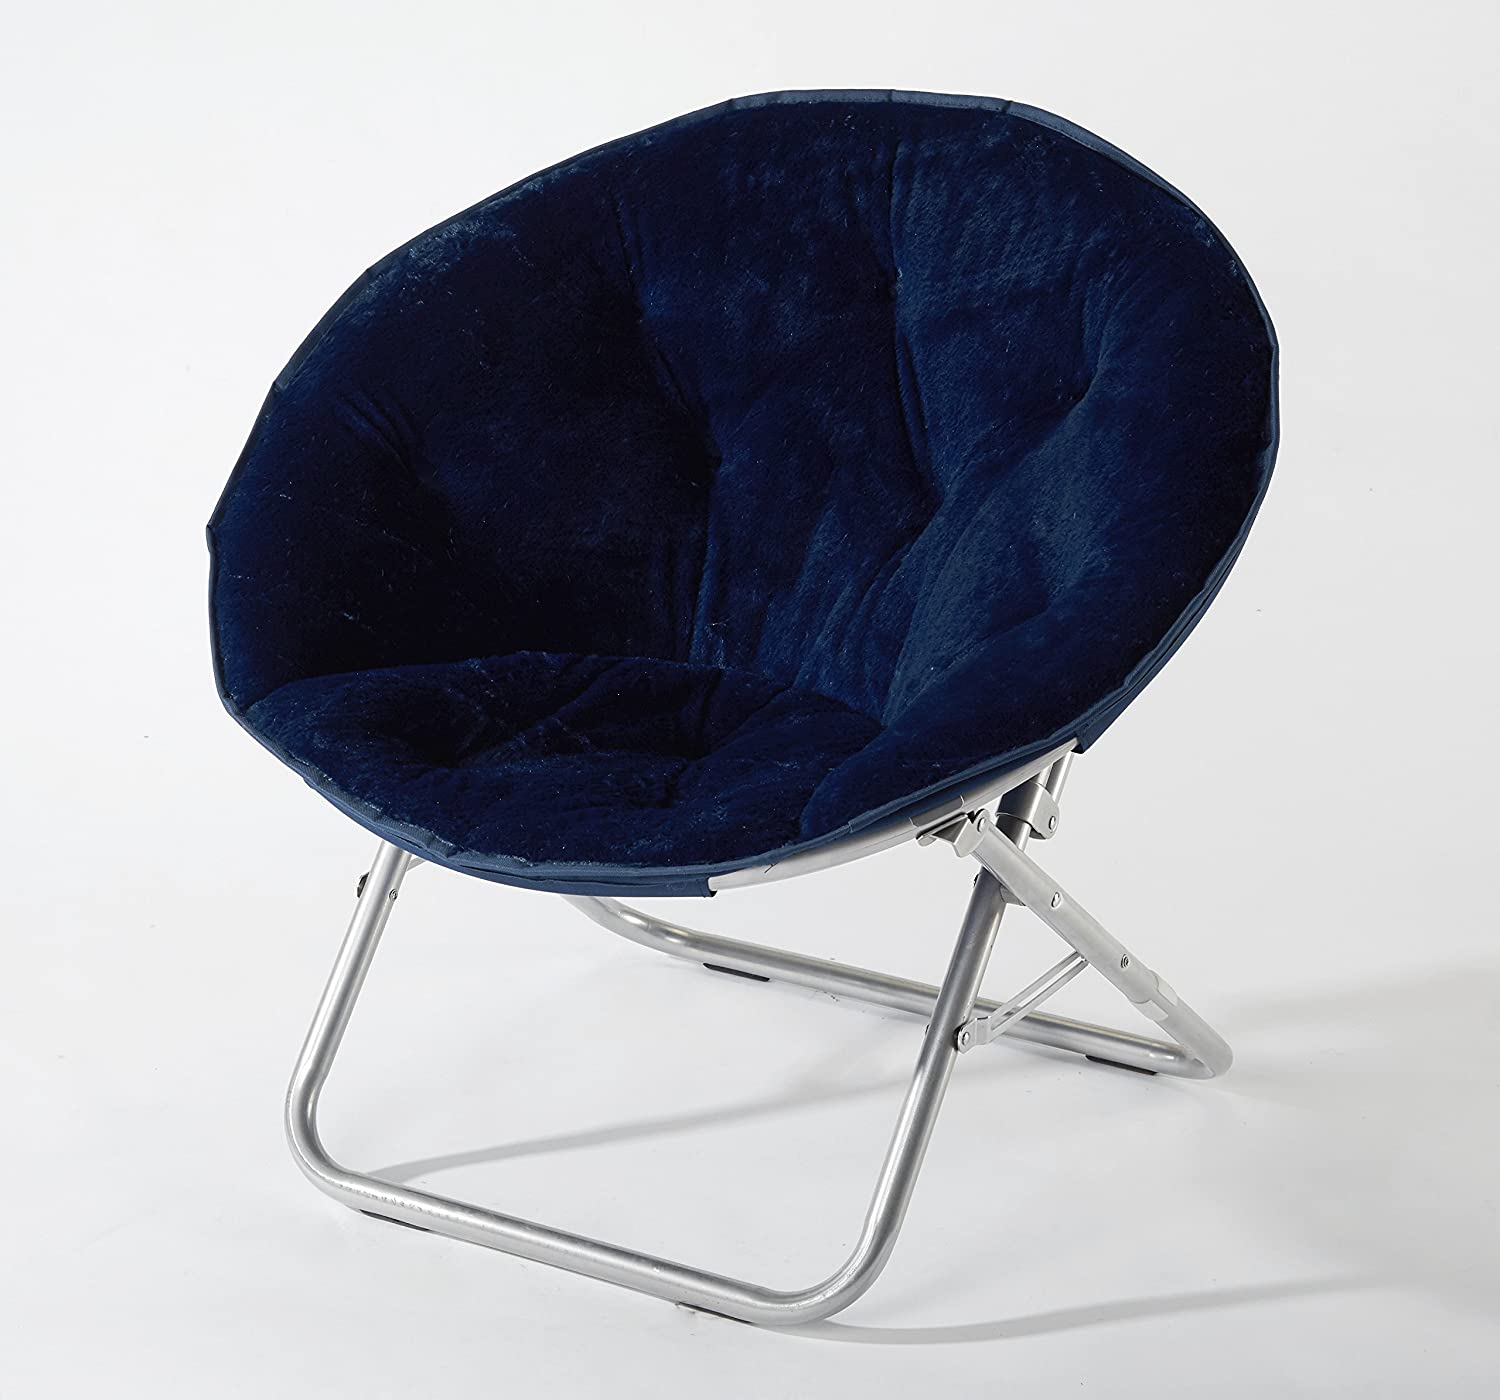 225 lbs Capacity Foldable Steel Frame Soft and Wide Seat Faux-Fur Saucer Folding Chair in Black